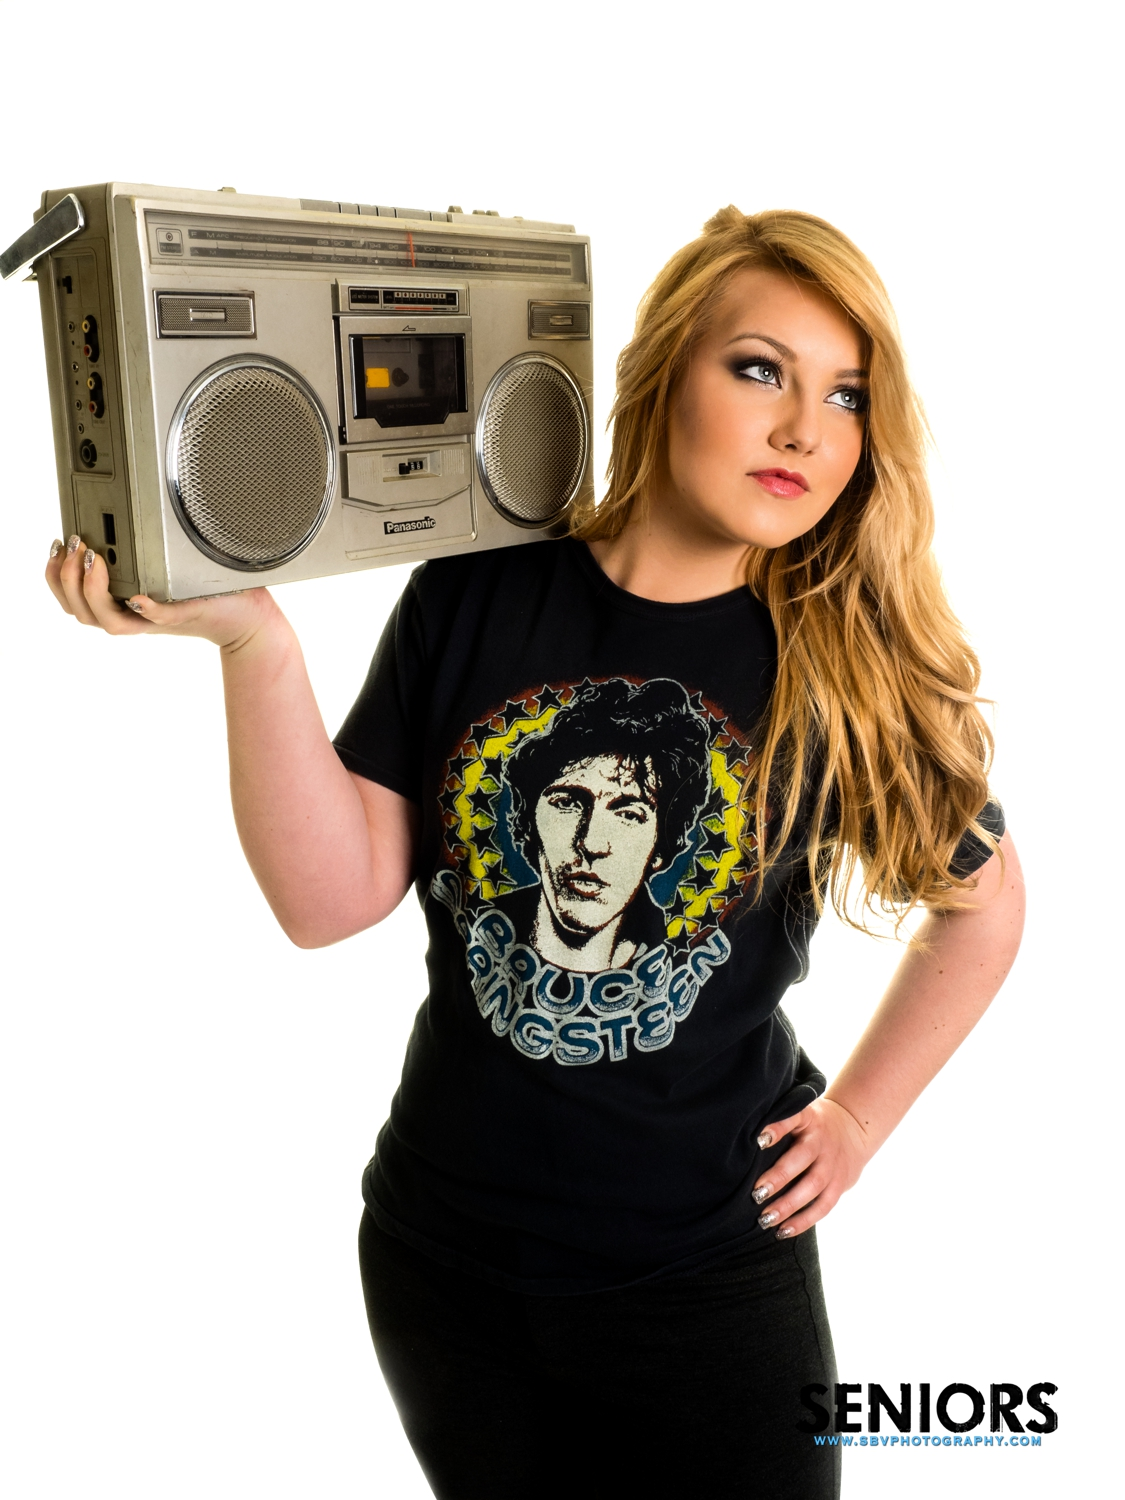 A retro boom box and Bruce Springsteen tour shirt is featured in this music themed senior picture session.